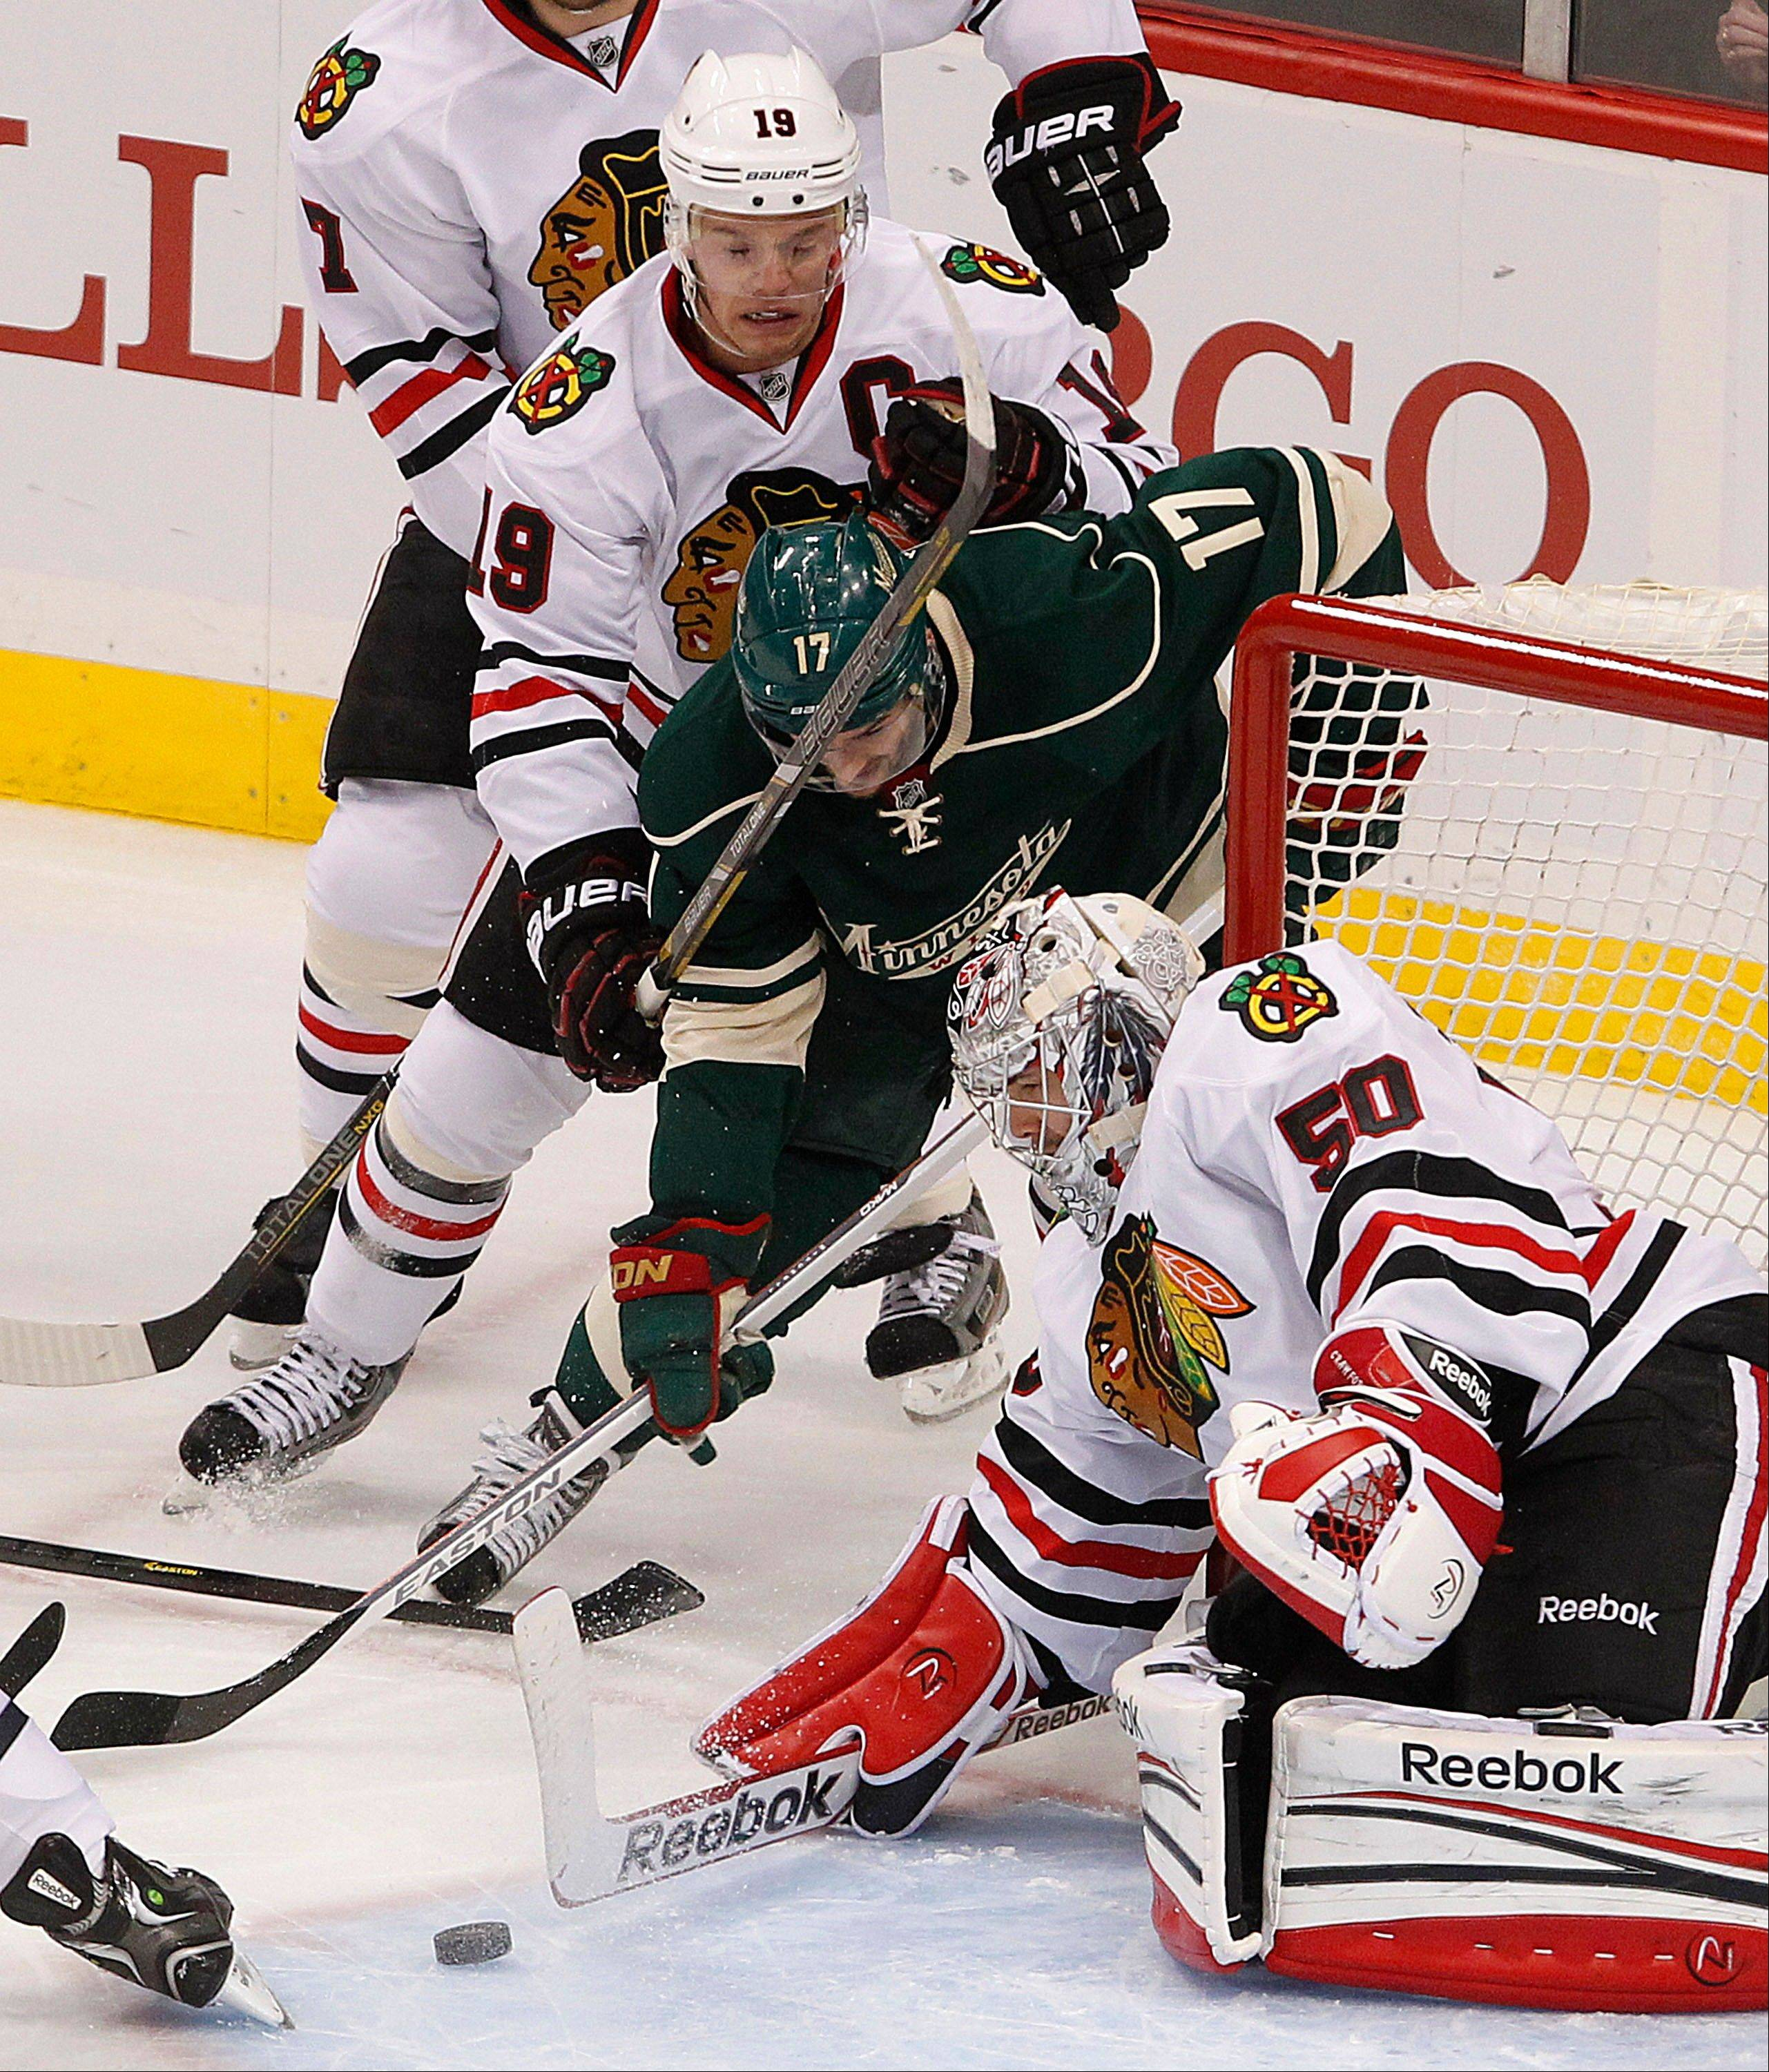 Blackhawks goalie Corey Crawford blocks a shot by the Minnesota Wild�s Torrey Mitchell in the first period of Game 3 of a first-round NHL hockey Stanley Cup playoff series on Sunday, May 5, 2013, in St. Paul, Minn.